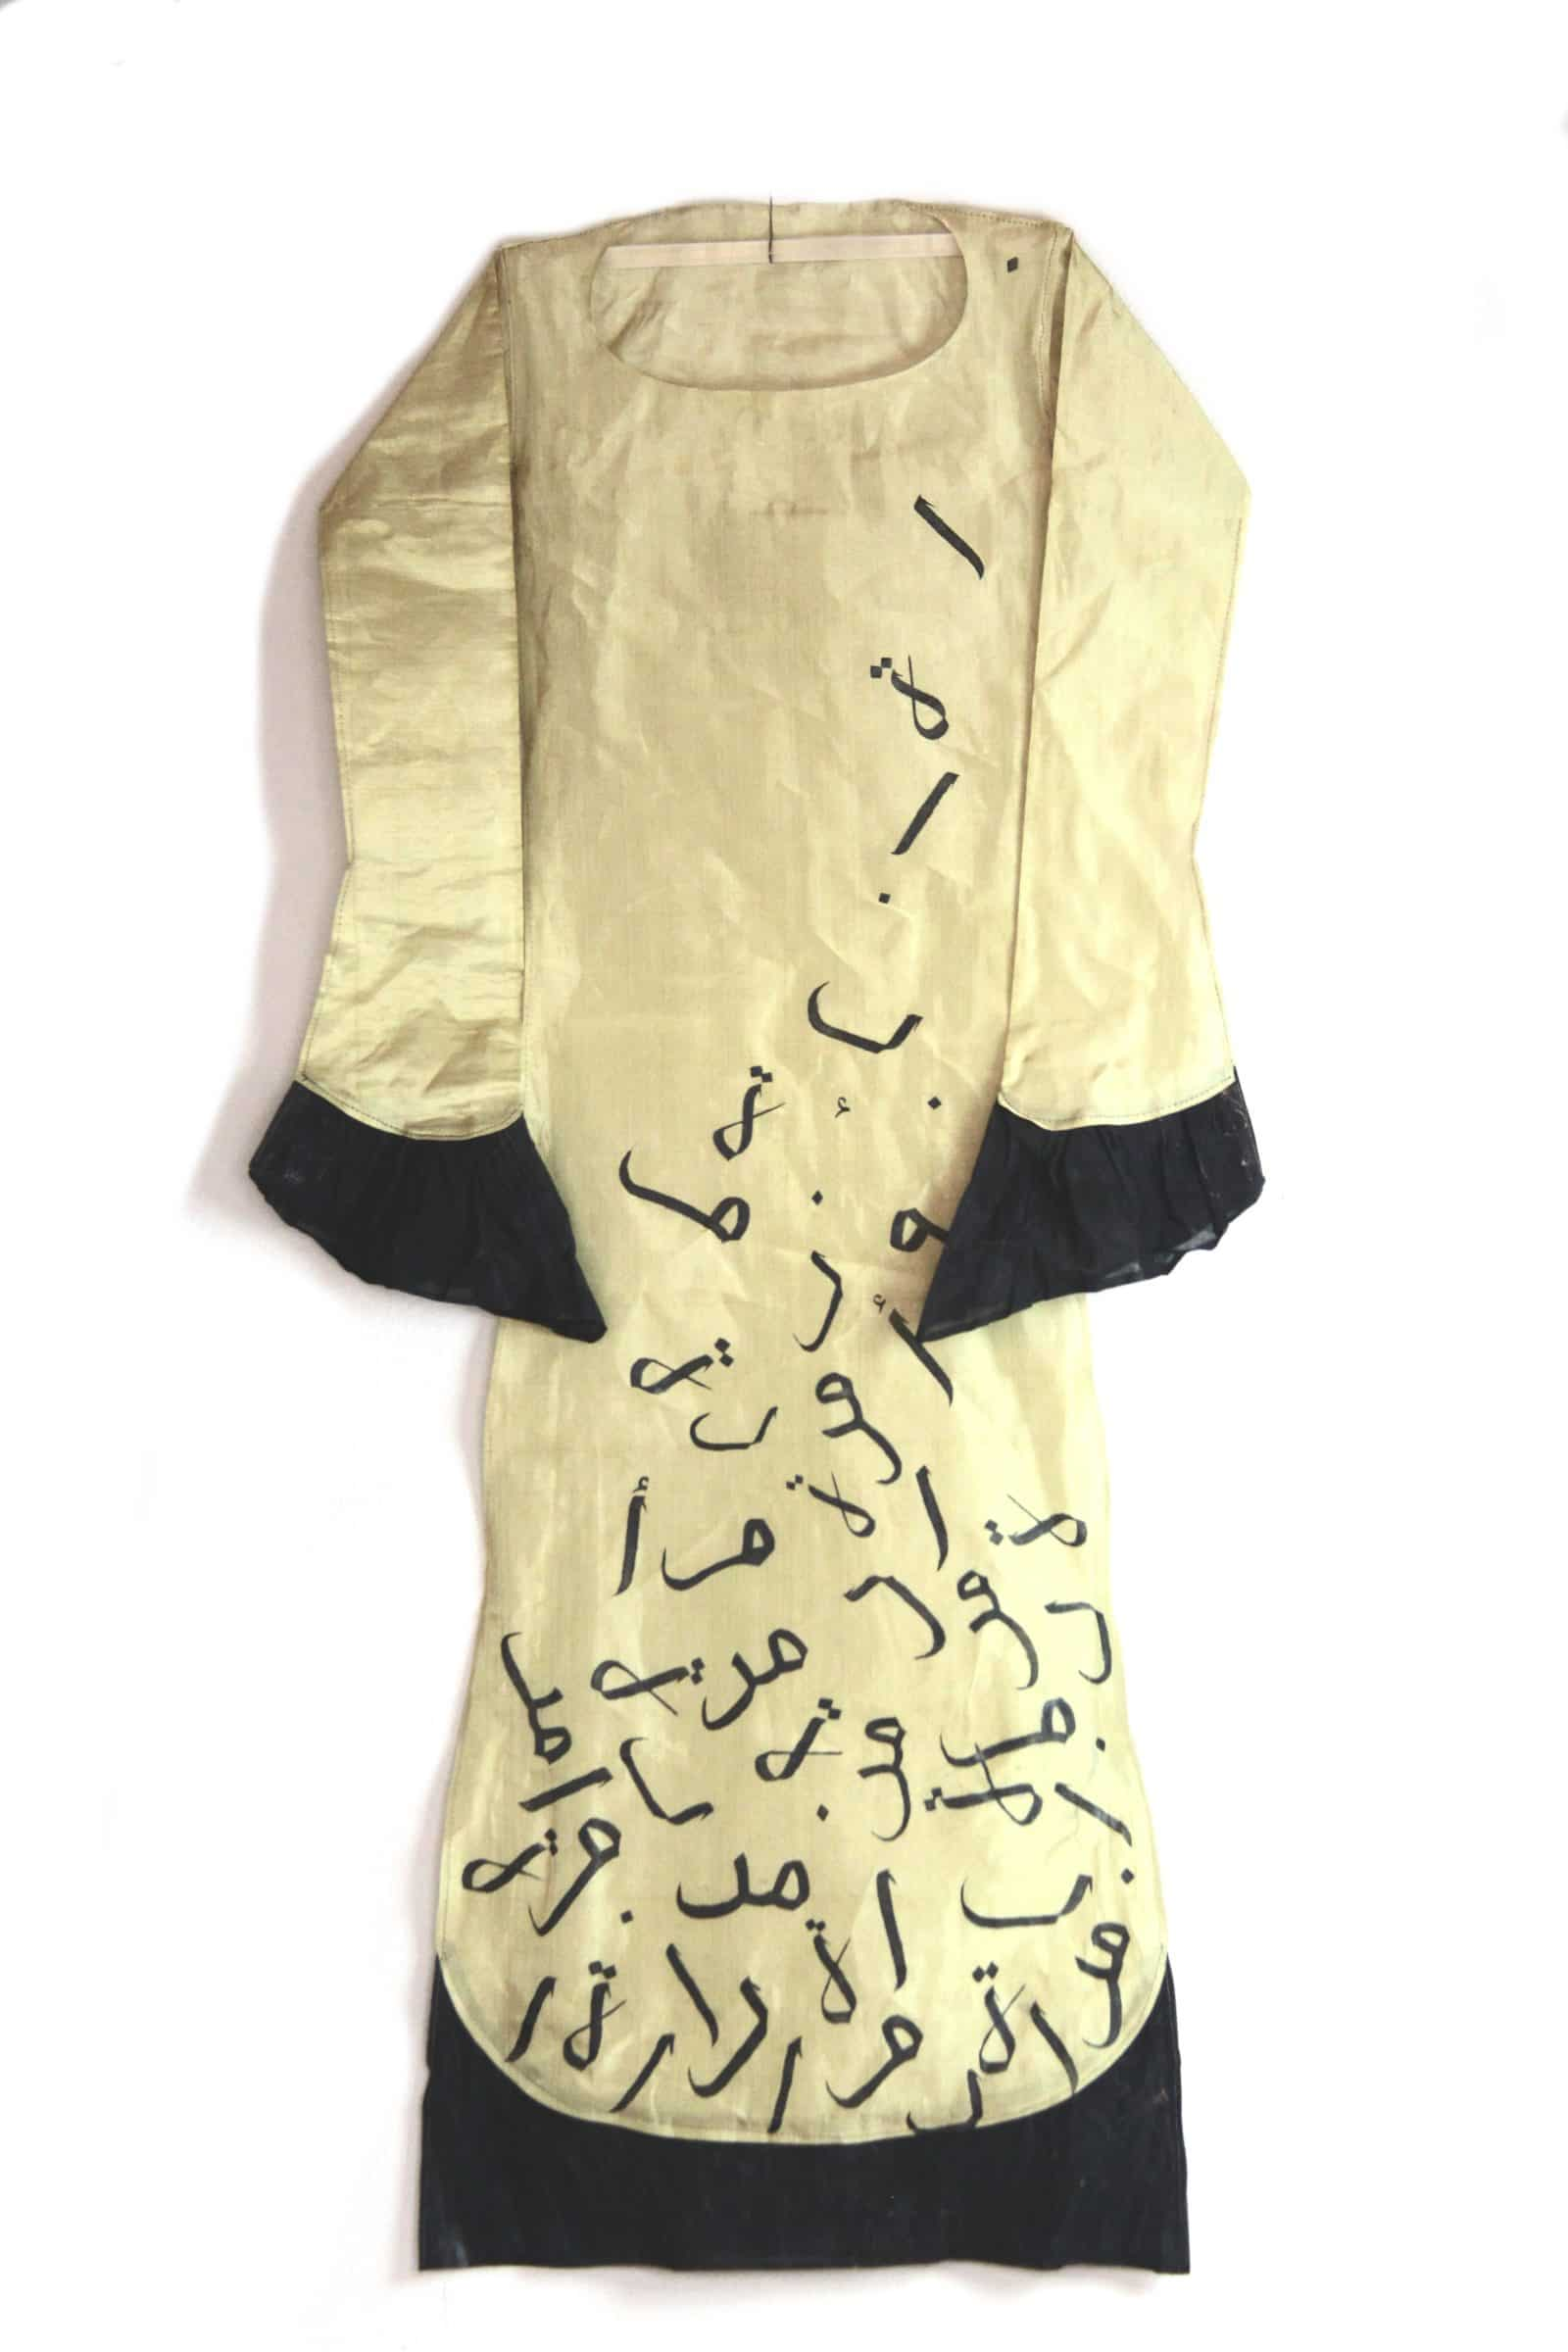 Belgin Yucelen - Calligraphy Dress